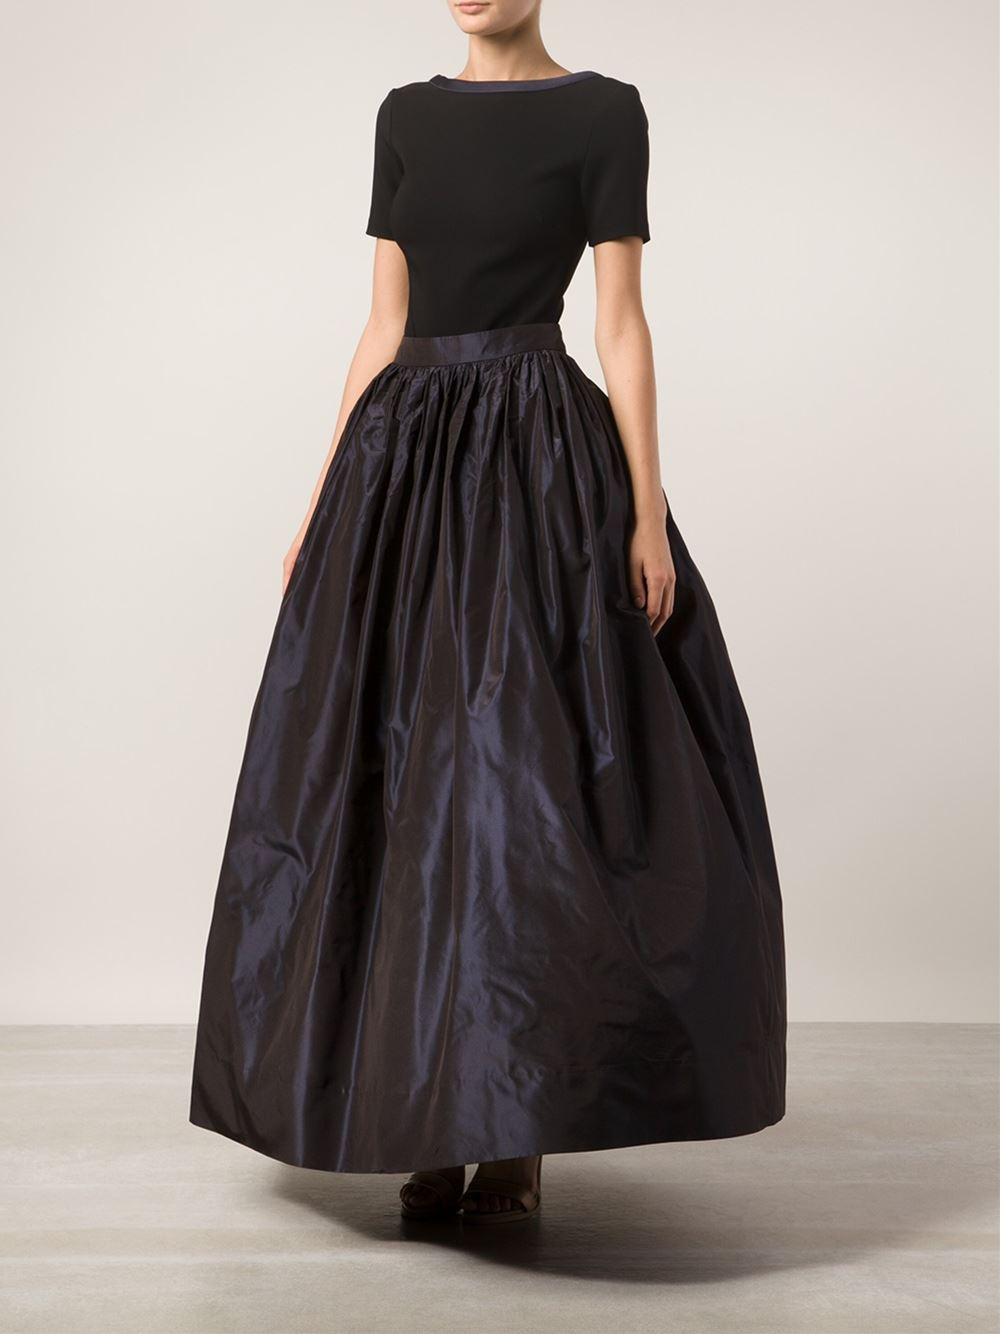 Martin grant Long Taffeta Skirt in Blue | Lyst